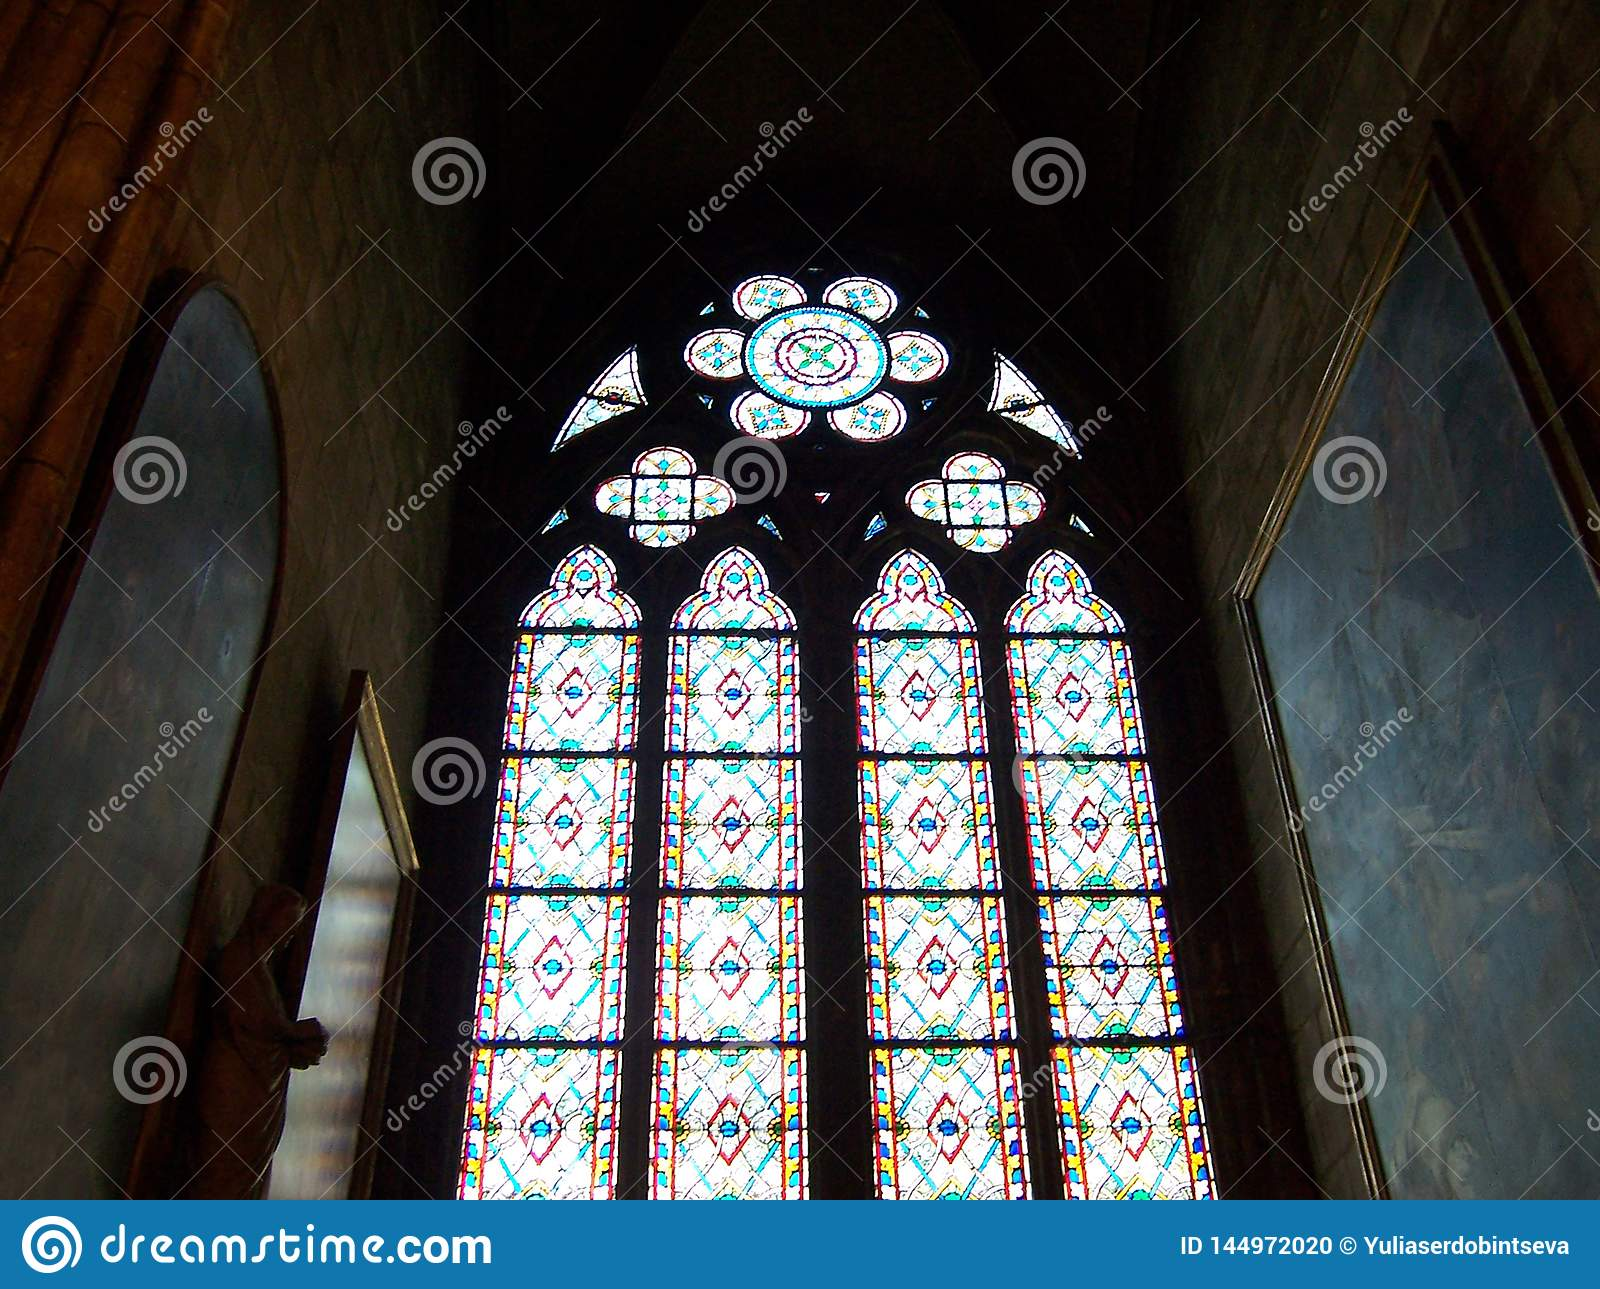 Paris, France - August 06, 2009: Colorful stained glass window in dark interior of the Notre Dame de Paris cathedral